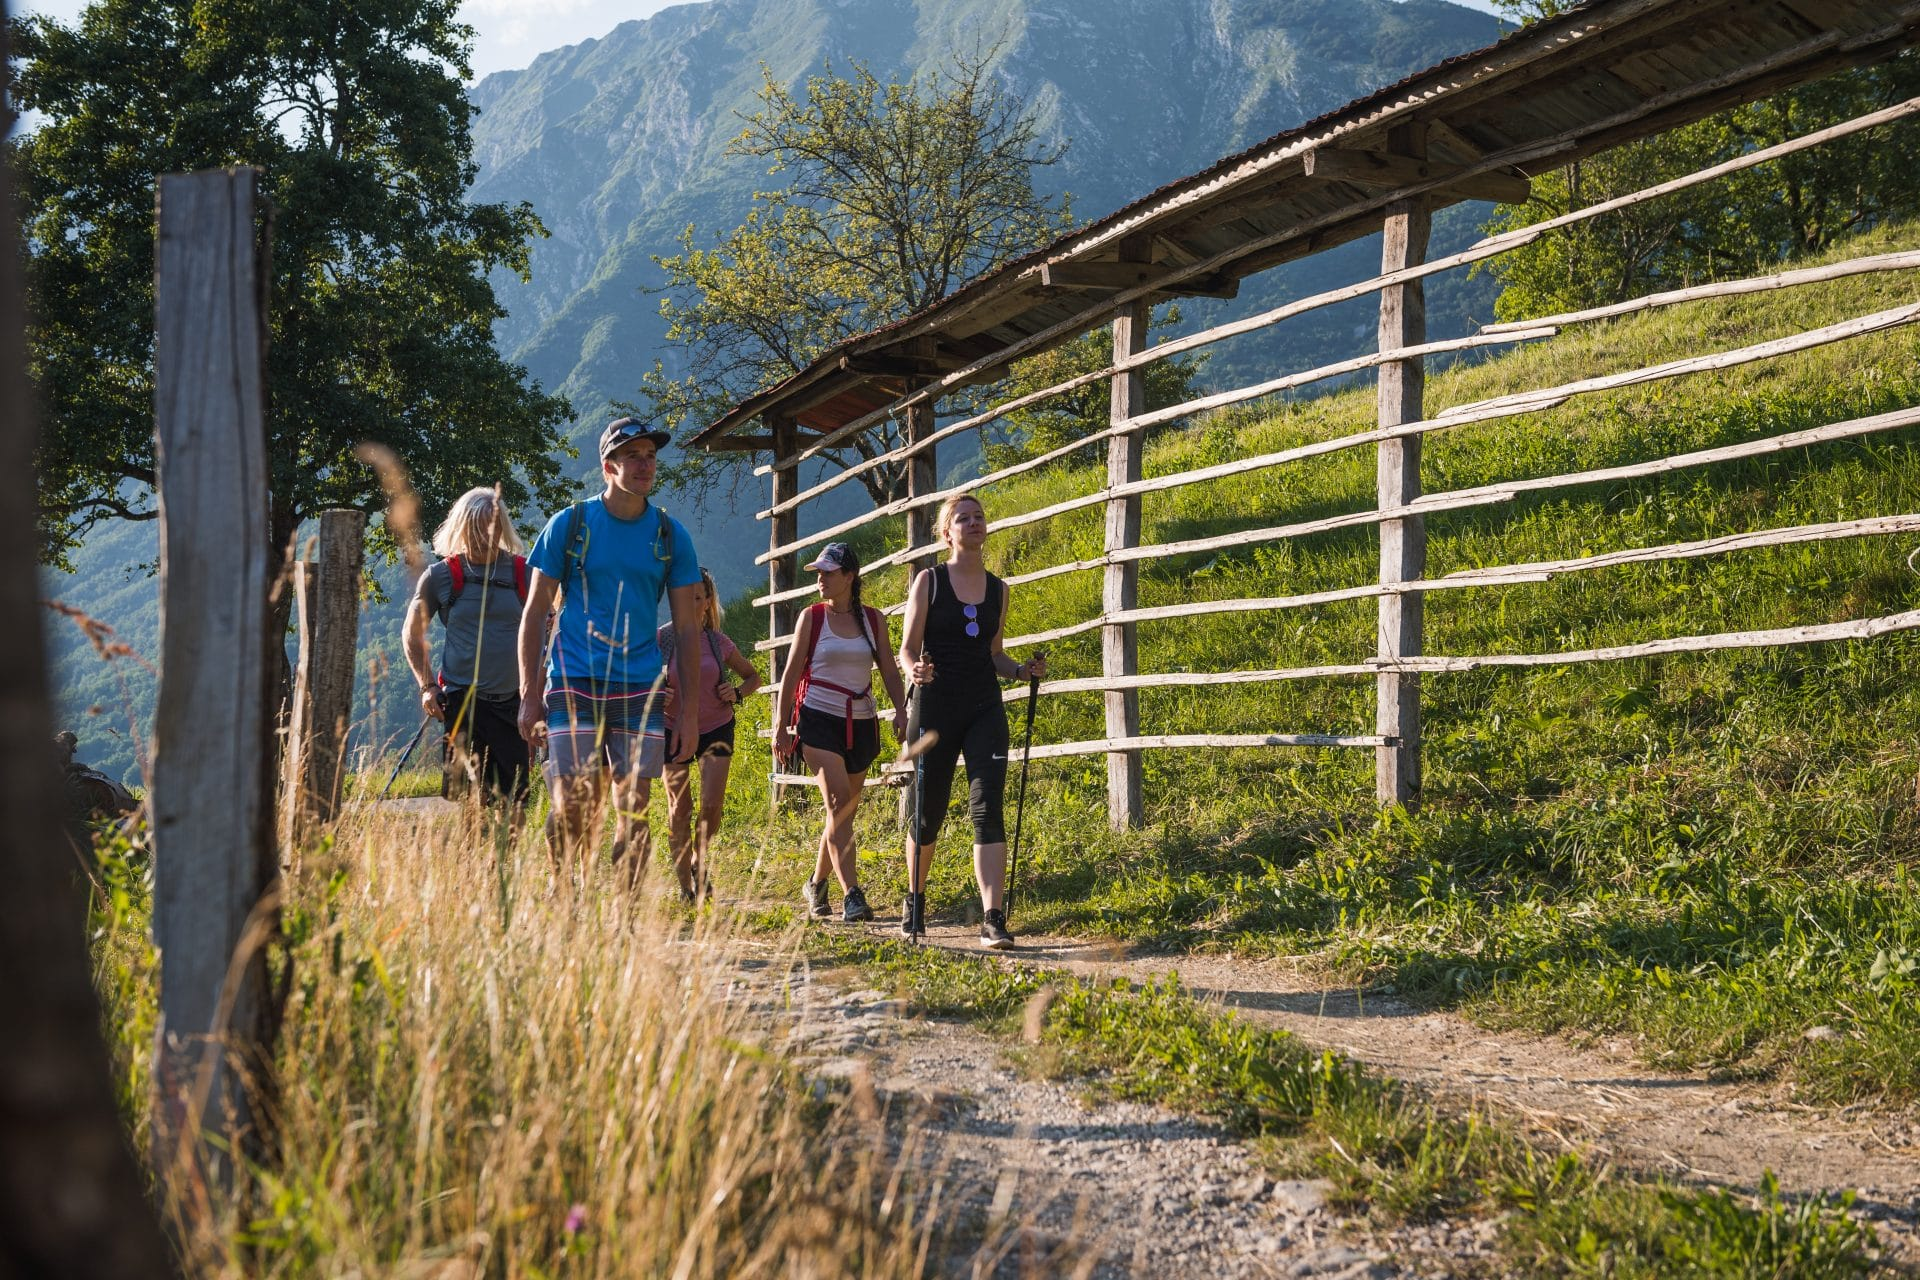 Group hiking in the Slovenian countryside